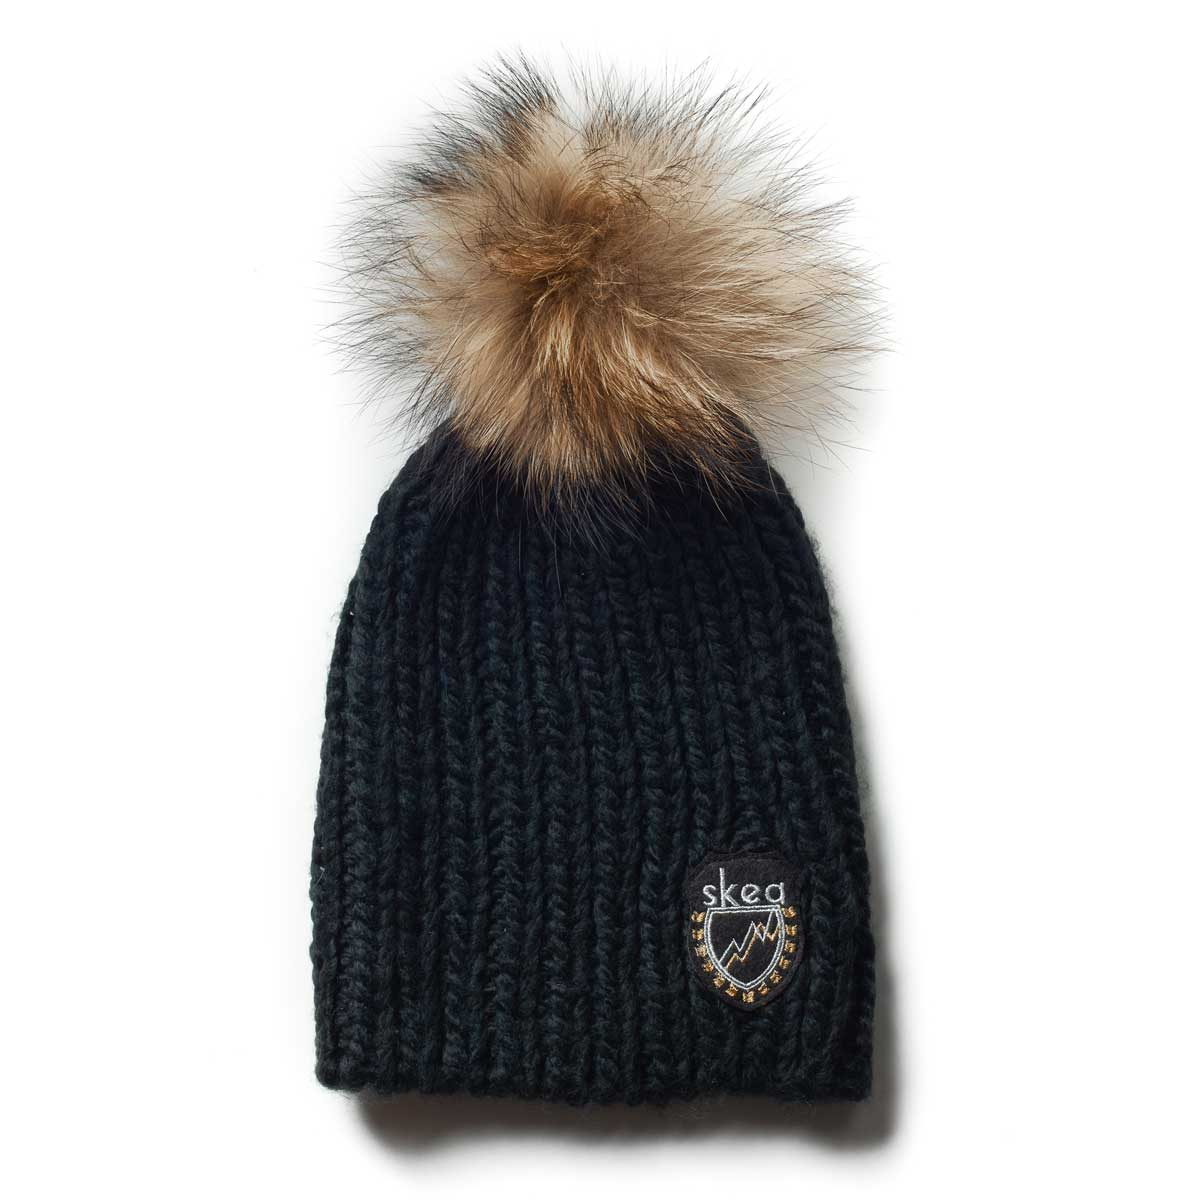 Skea Women's Beets Knit Hat with Fur Pom in Black and Finn Pom